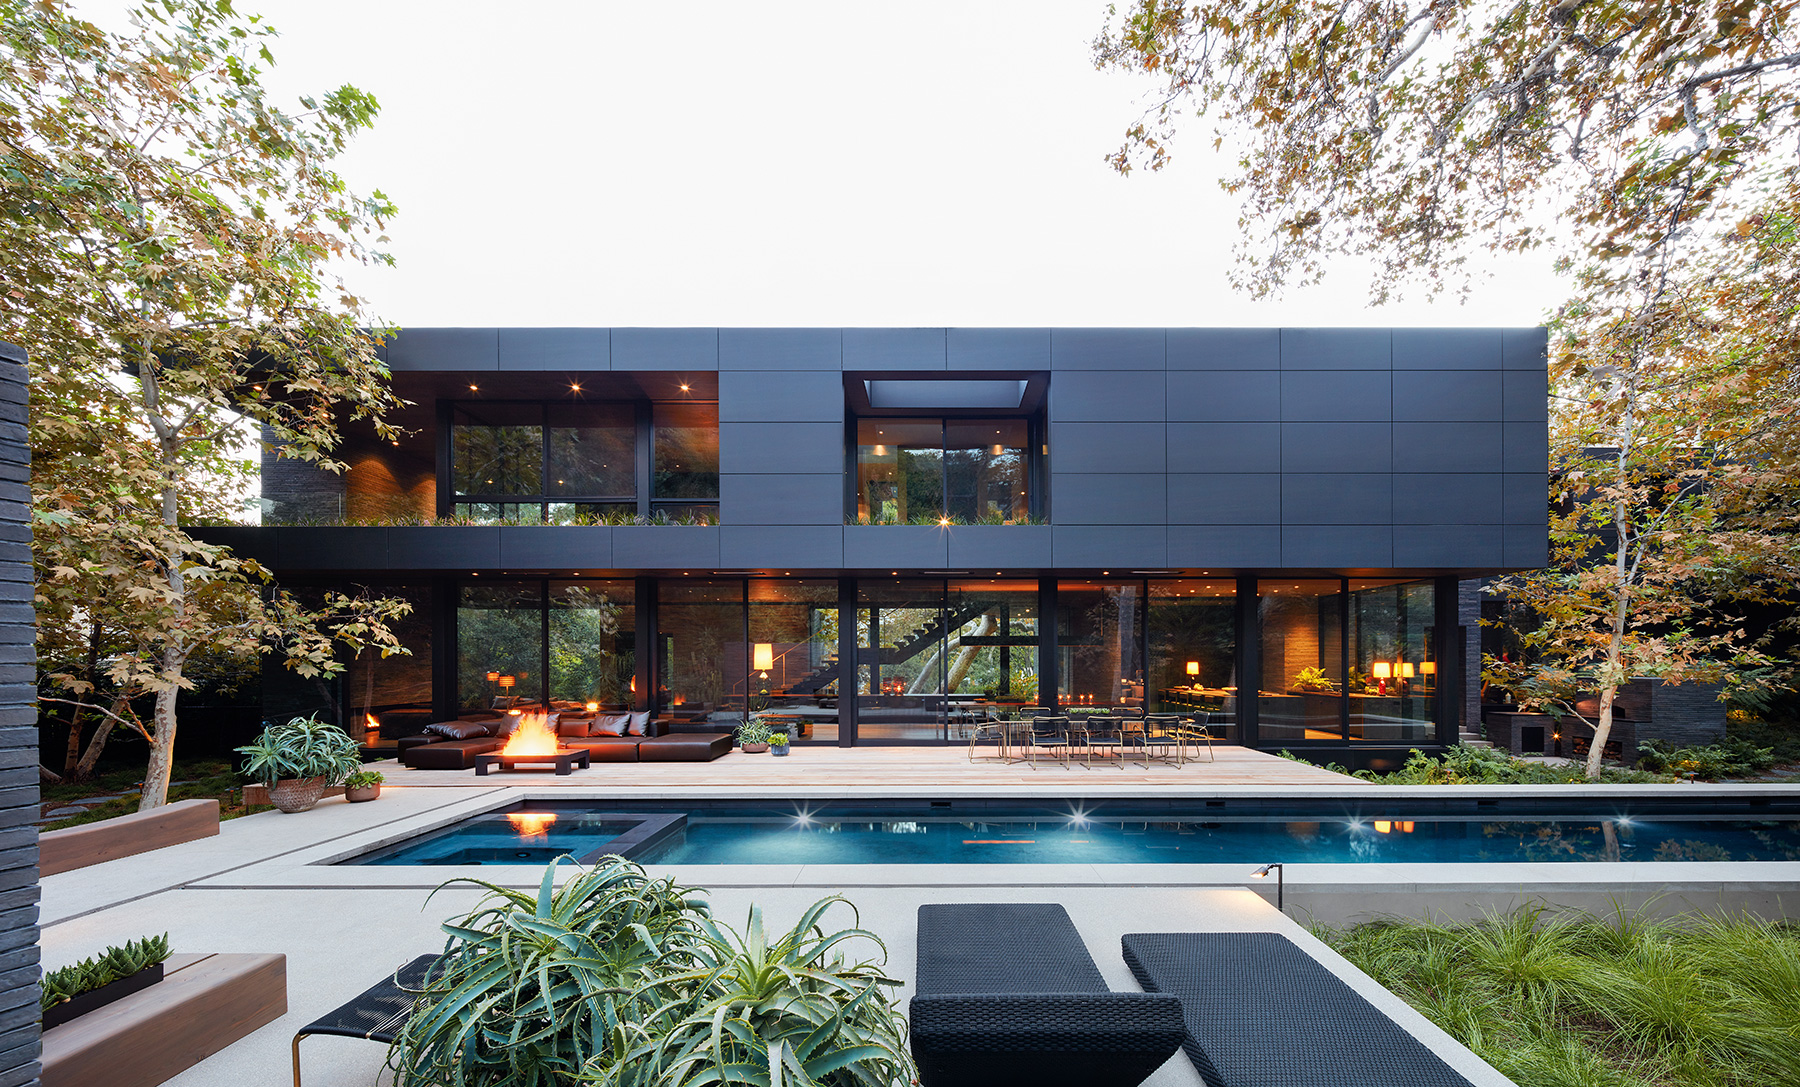 Site: Marmol Radziner in the Landscape Mandeville Canyon Los Angeles house exterior pool